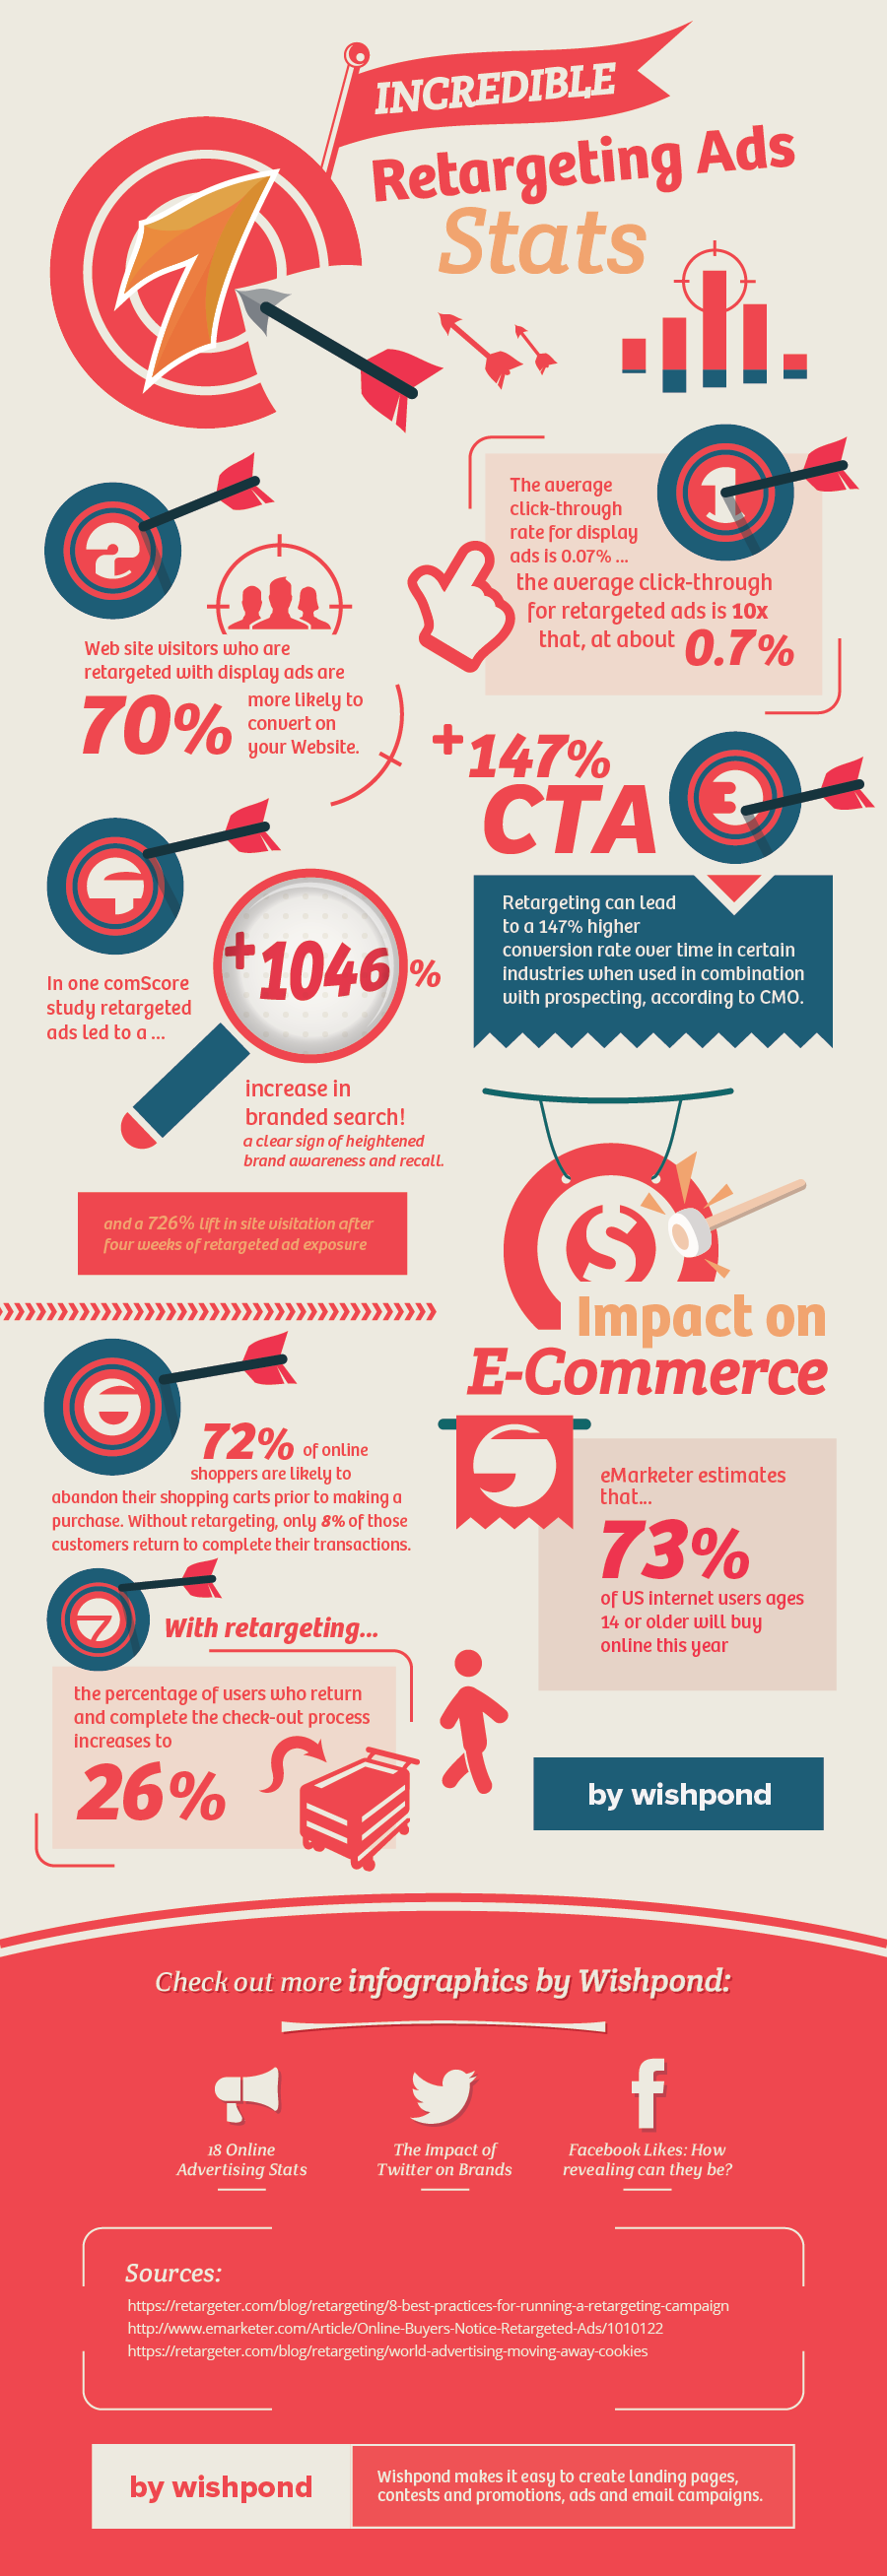 17 Incredible Retargeting Ad Statistics 2014 - #Infographic #Socialmedia